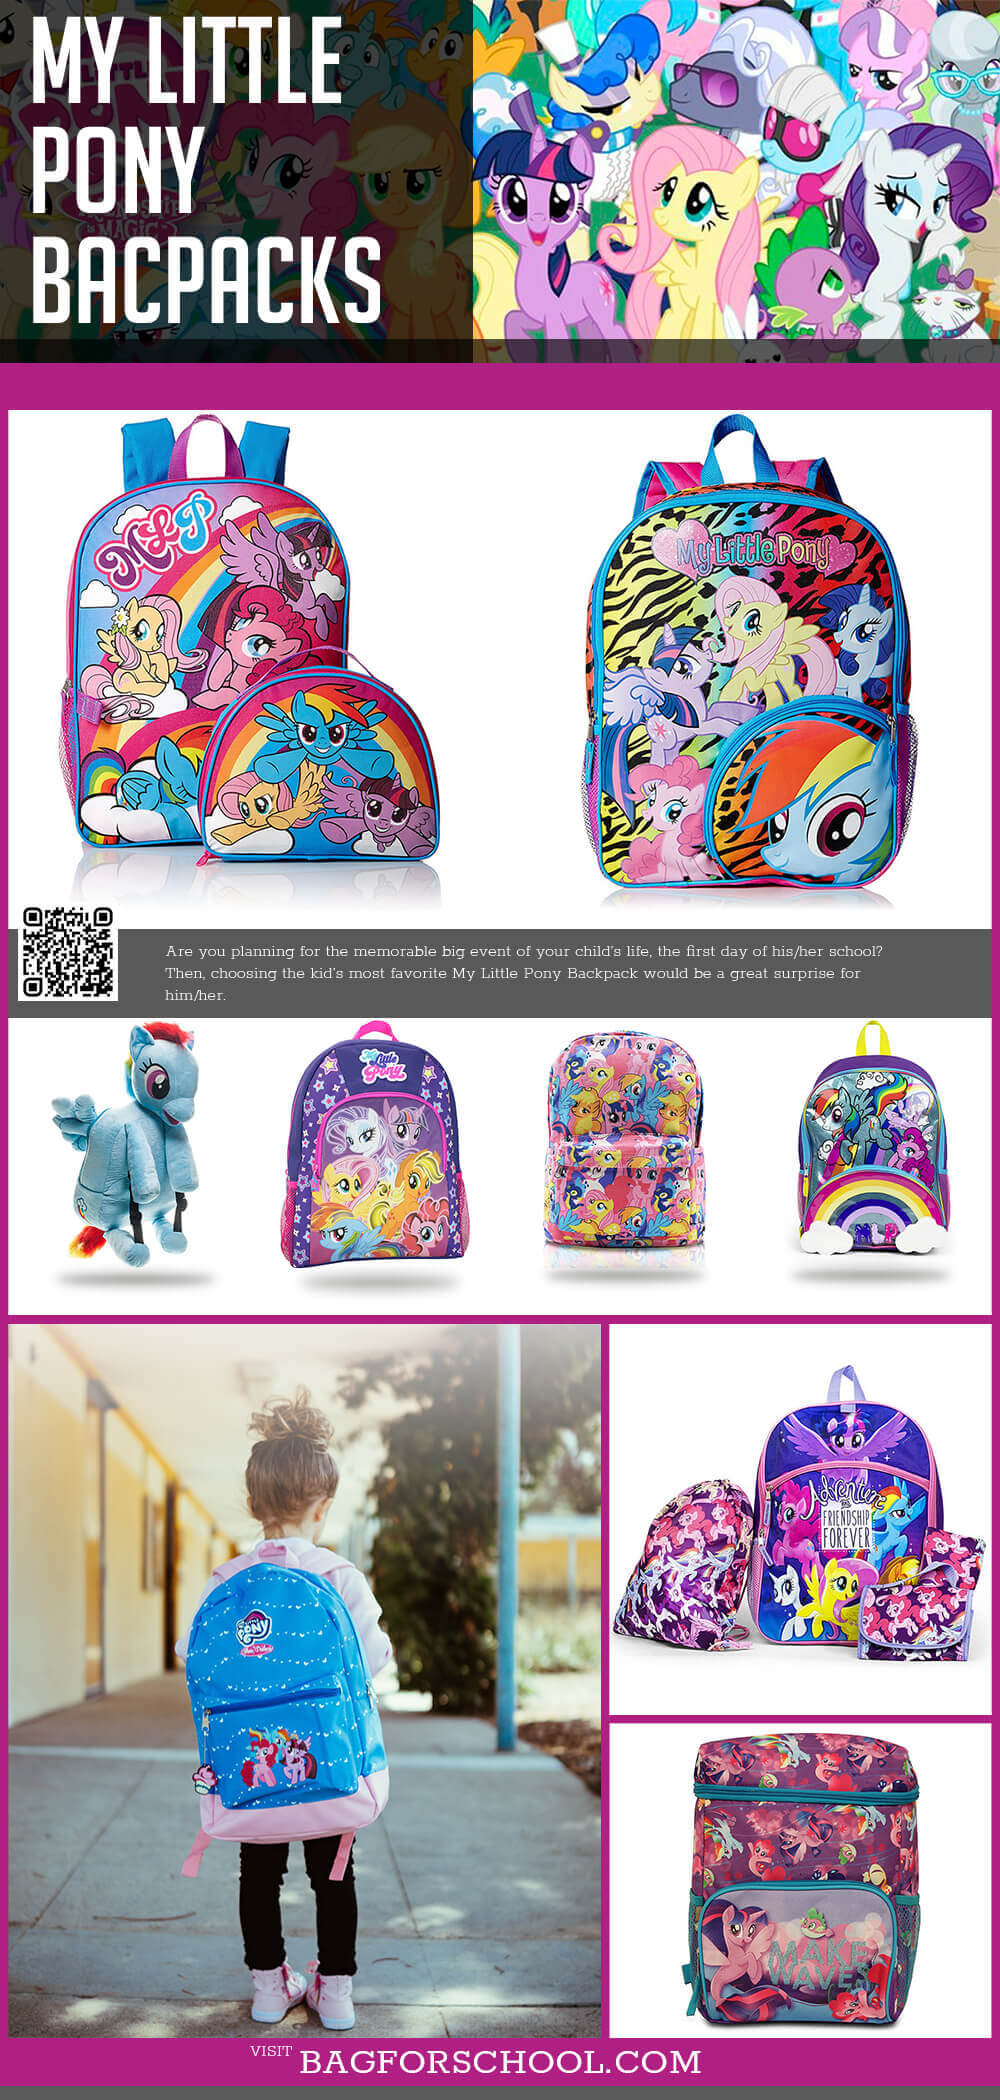 My Little Pony Backpacks